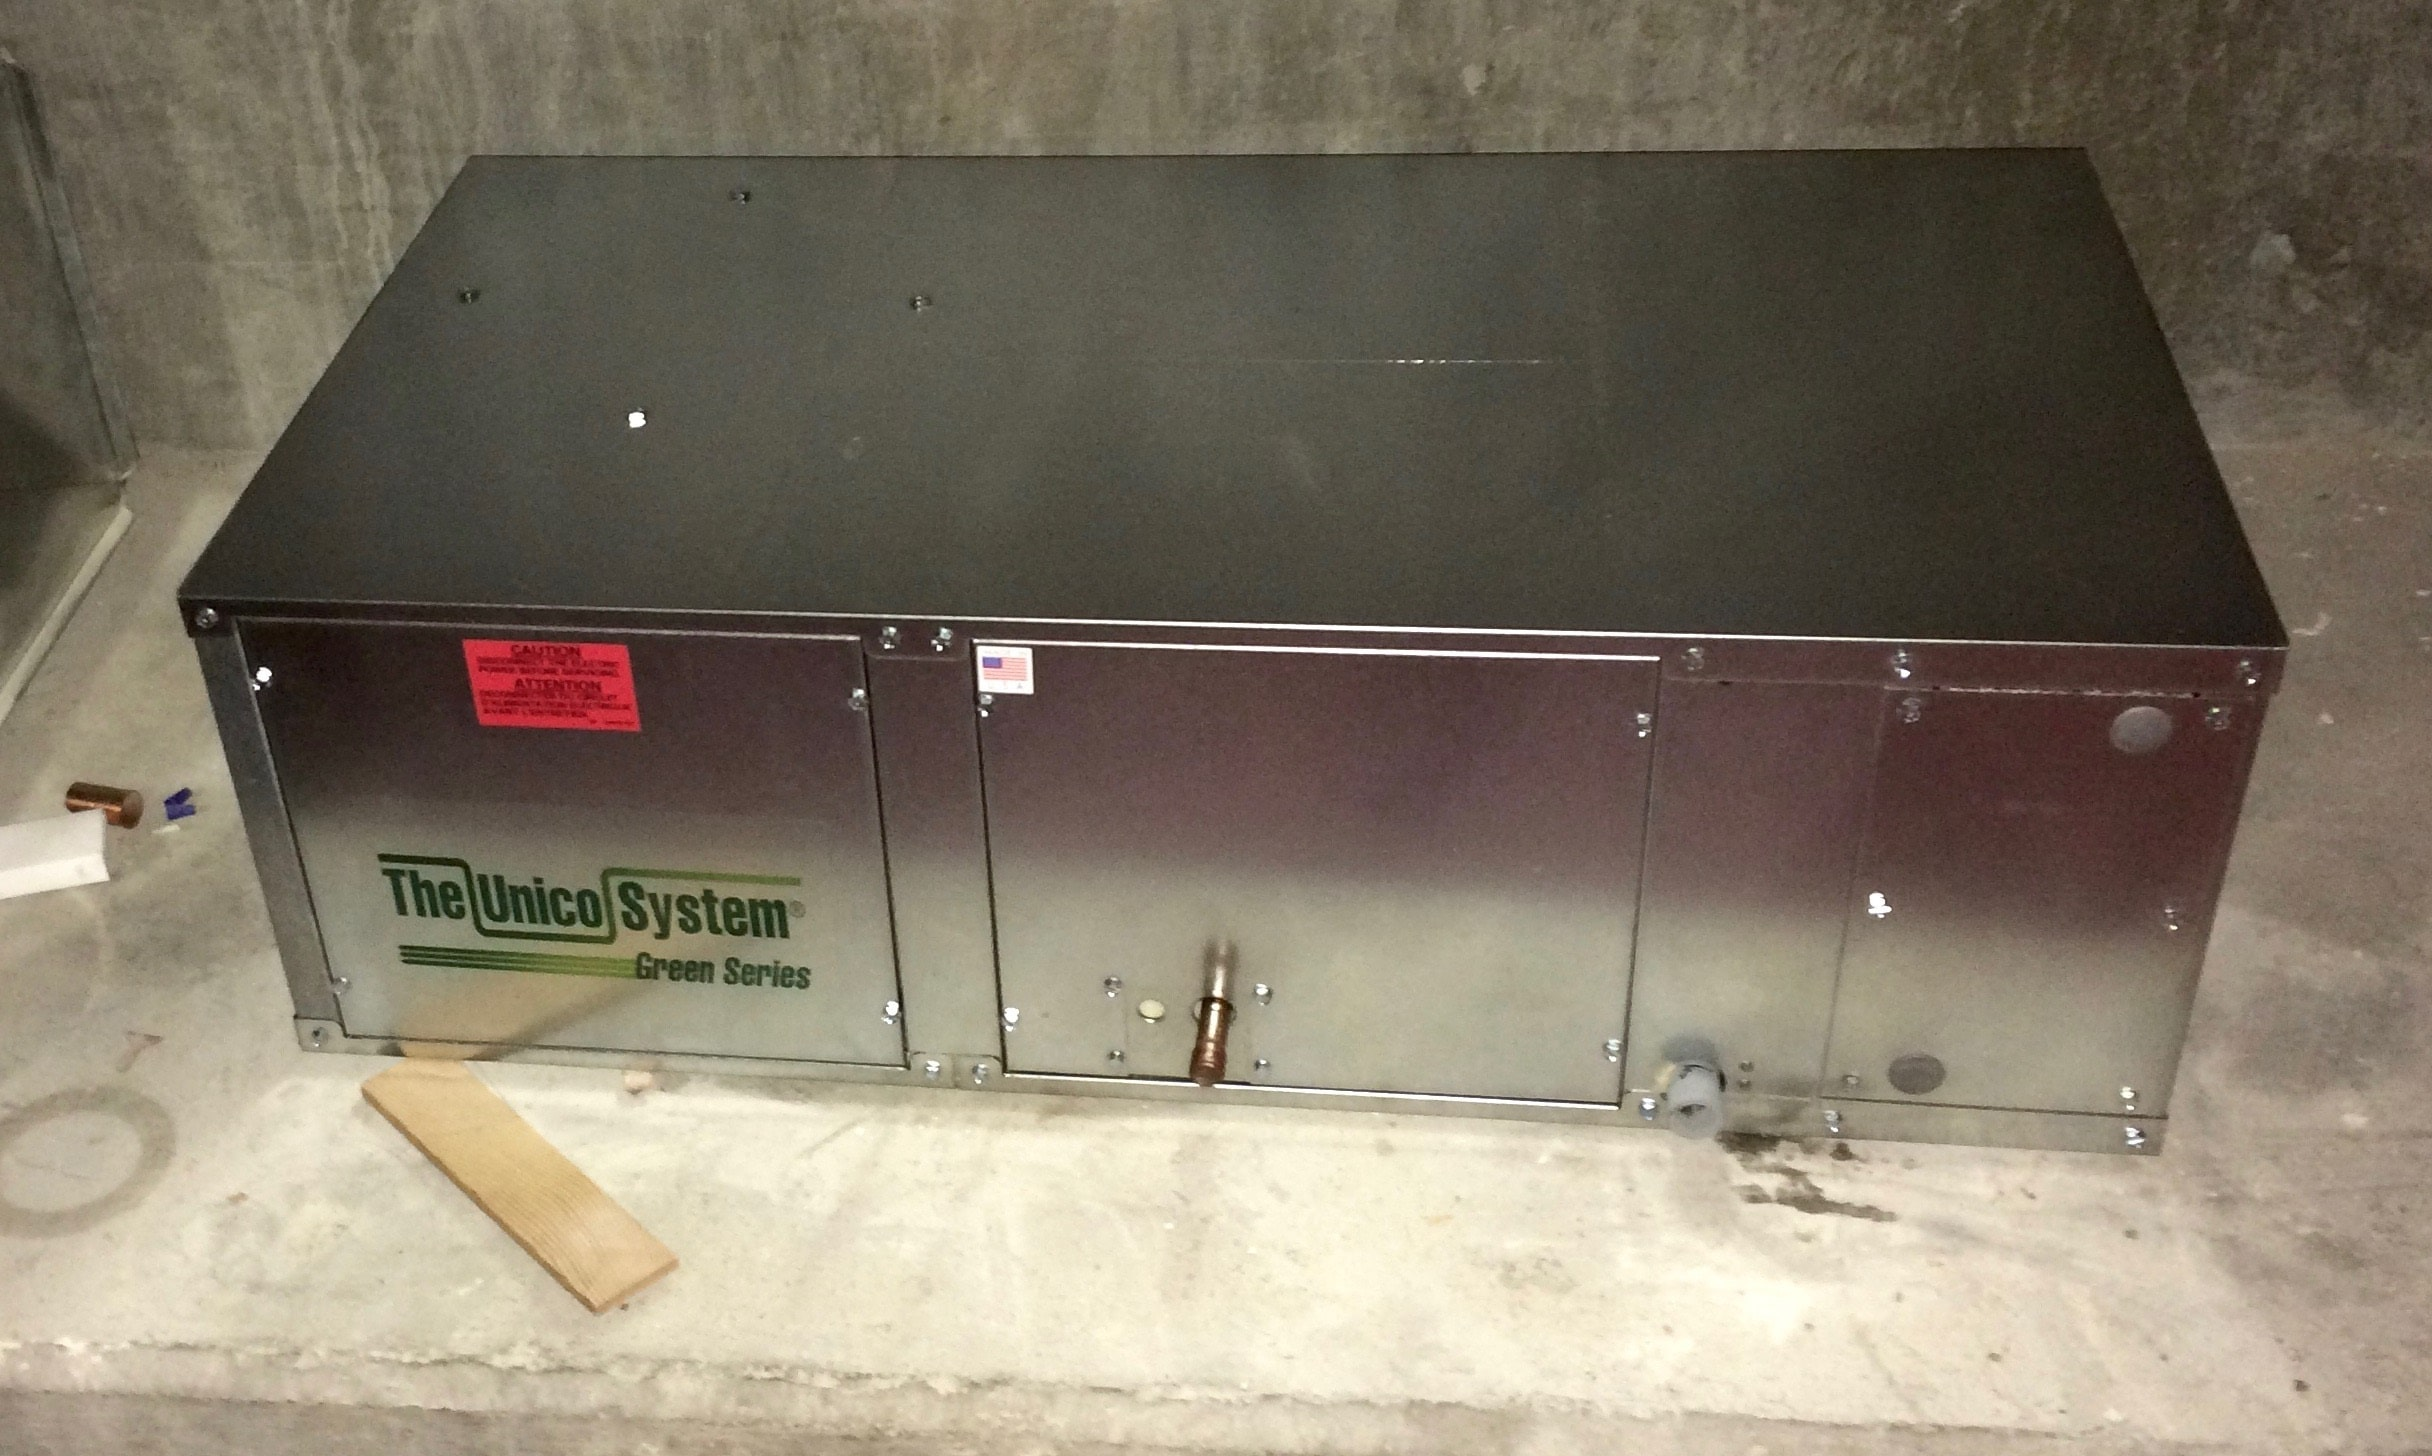 Click to read more about the project where this unit was installed!